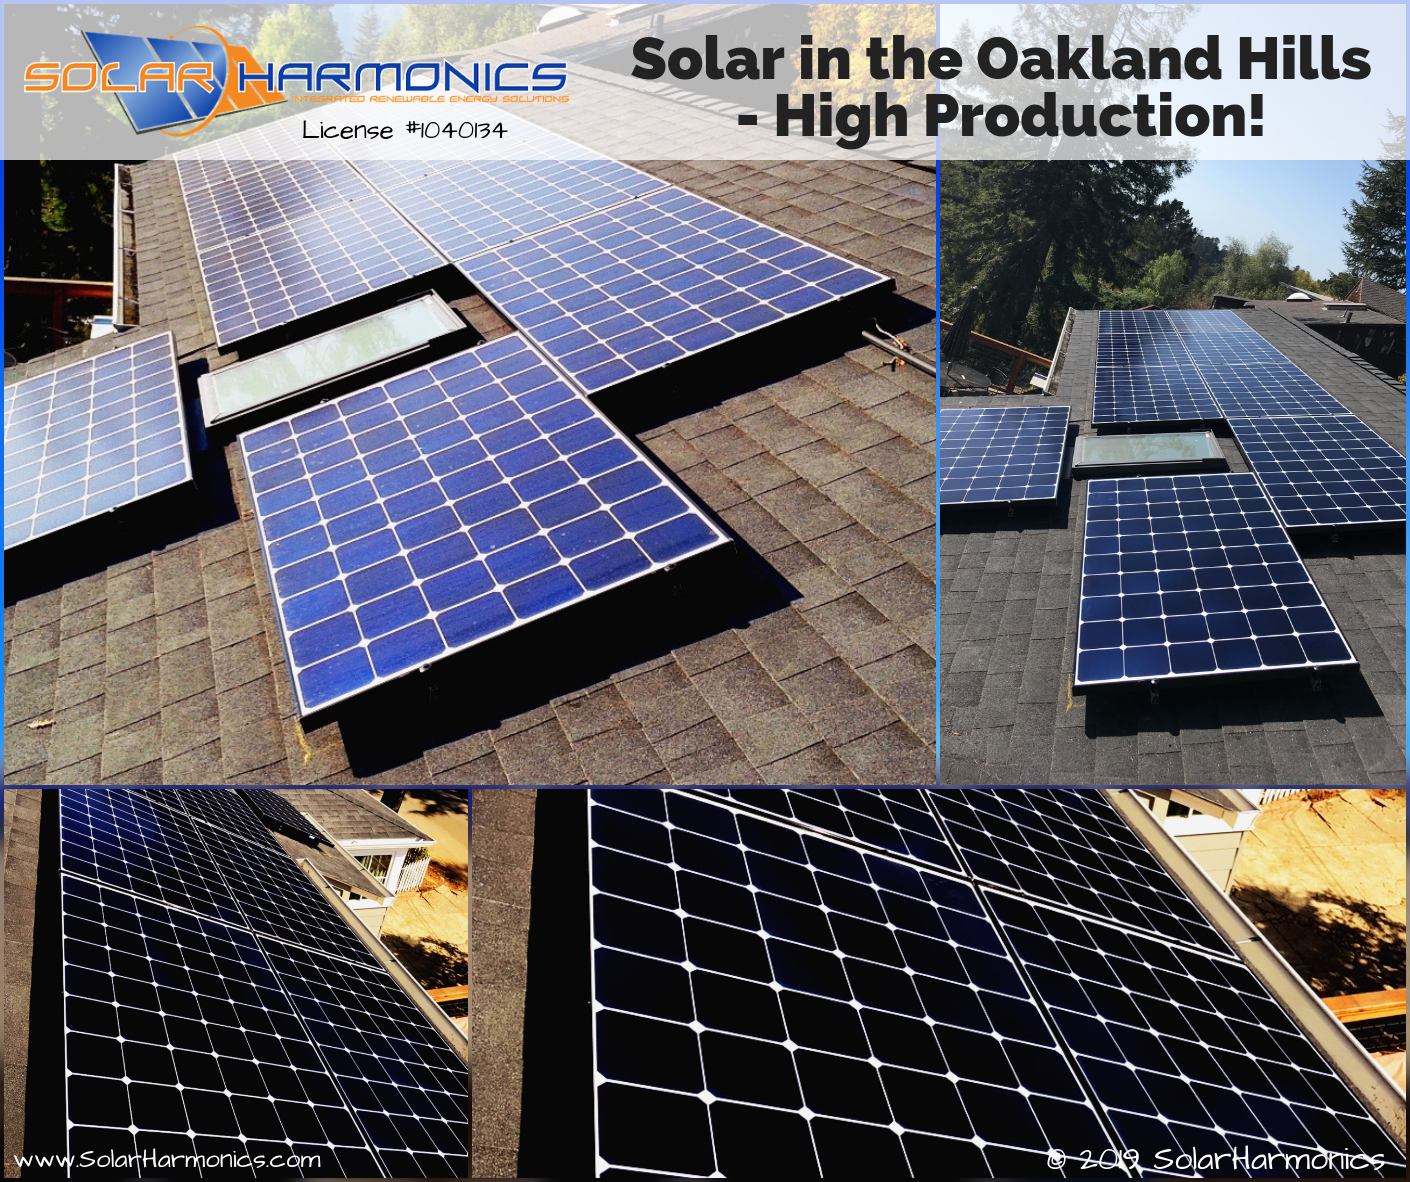 Solar In The Oakland Hills High Production Solaredge Technologies Inc Lgsolarusa Cslb Ca Solige With Images Buy Solar Panels Solar Panels For Home Roof Solar Panel